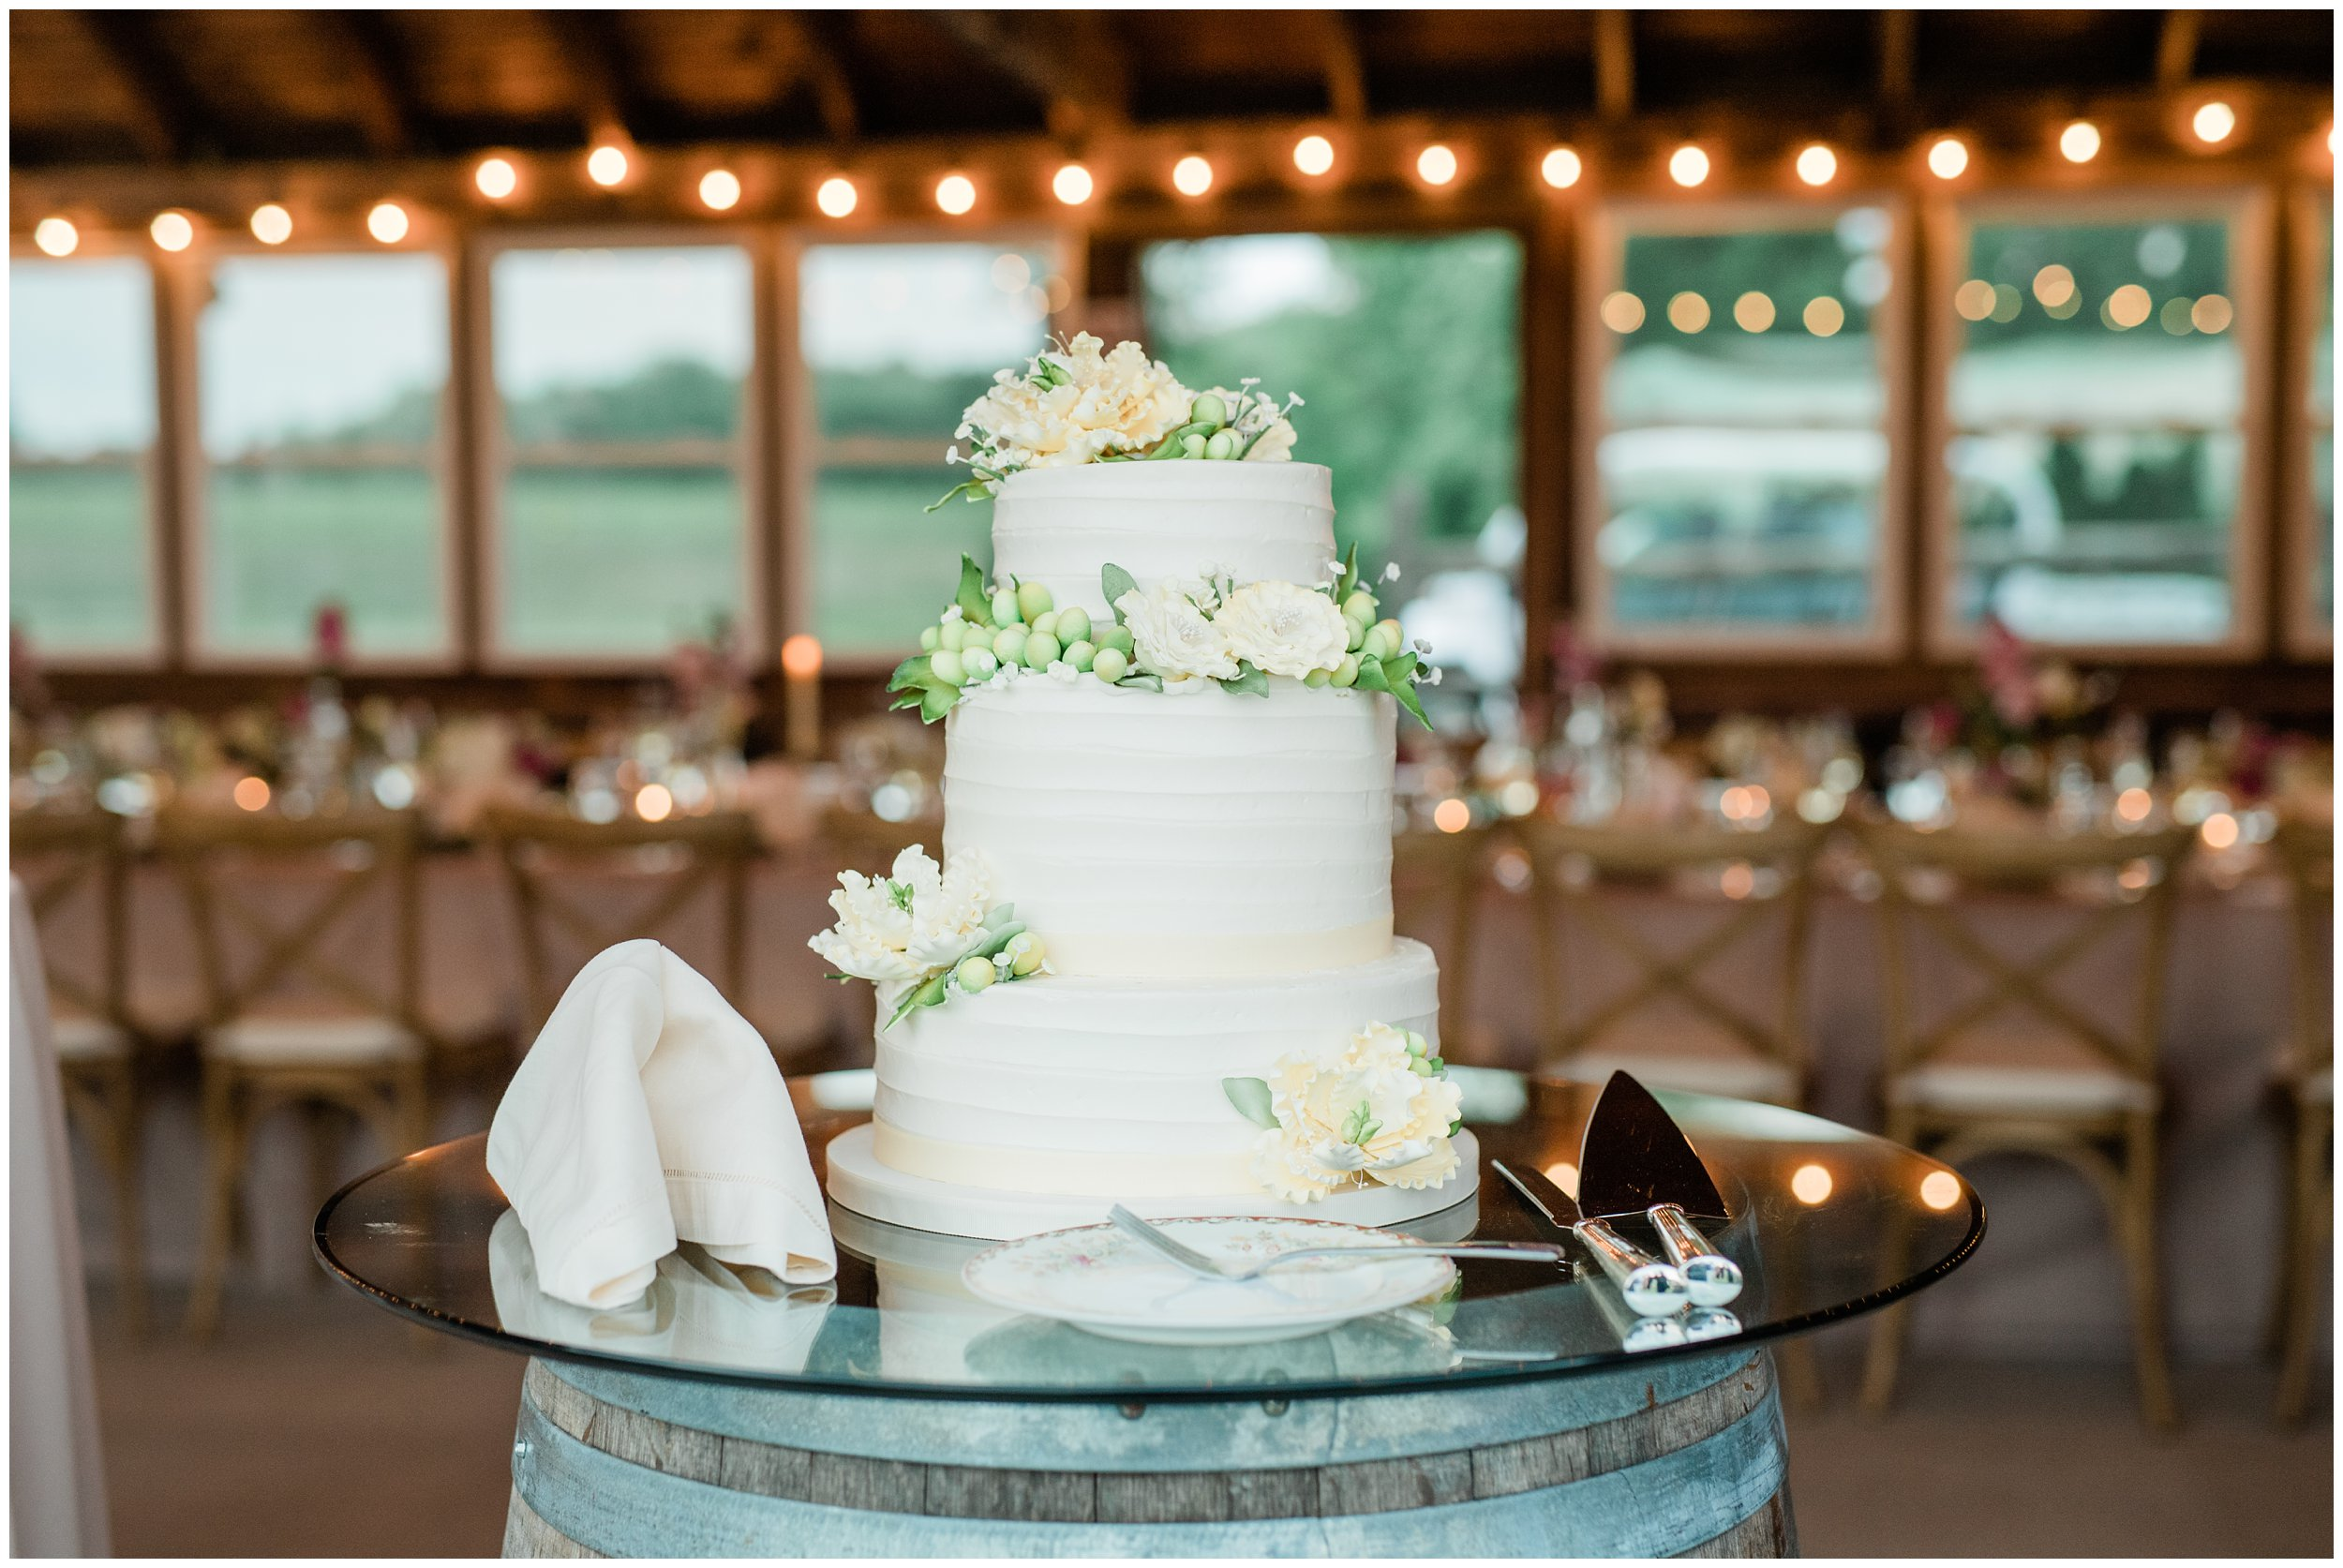 beautiful white wedding cake decorated with flowers